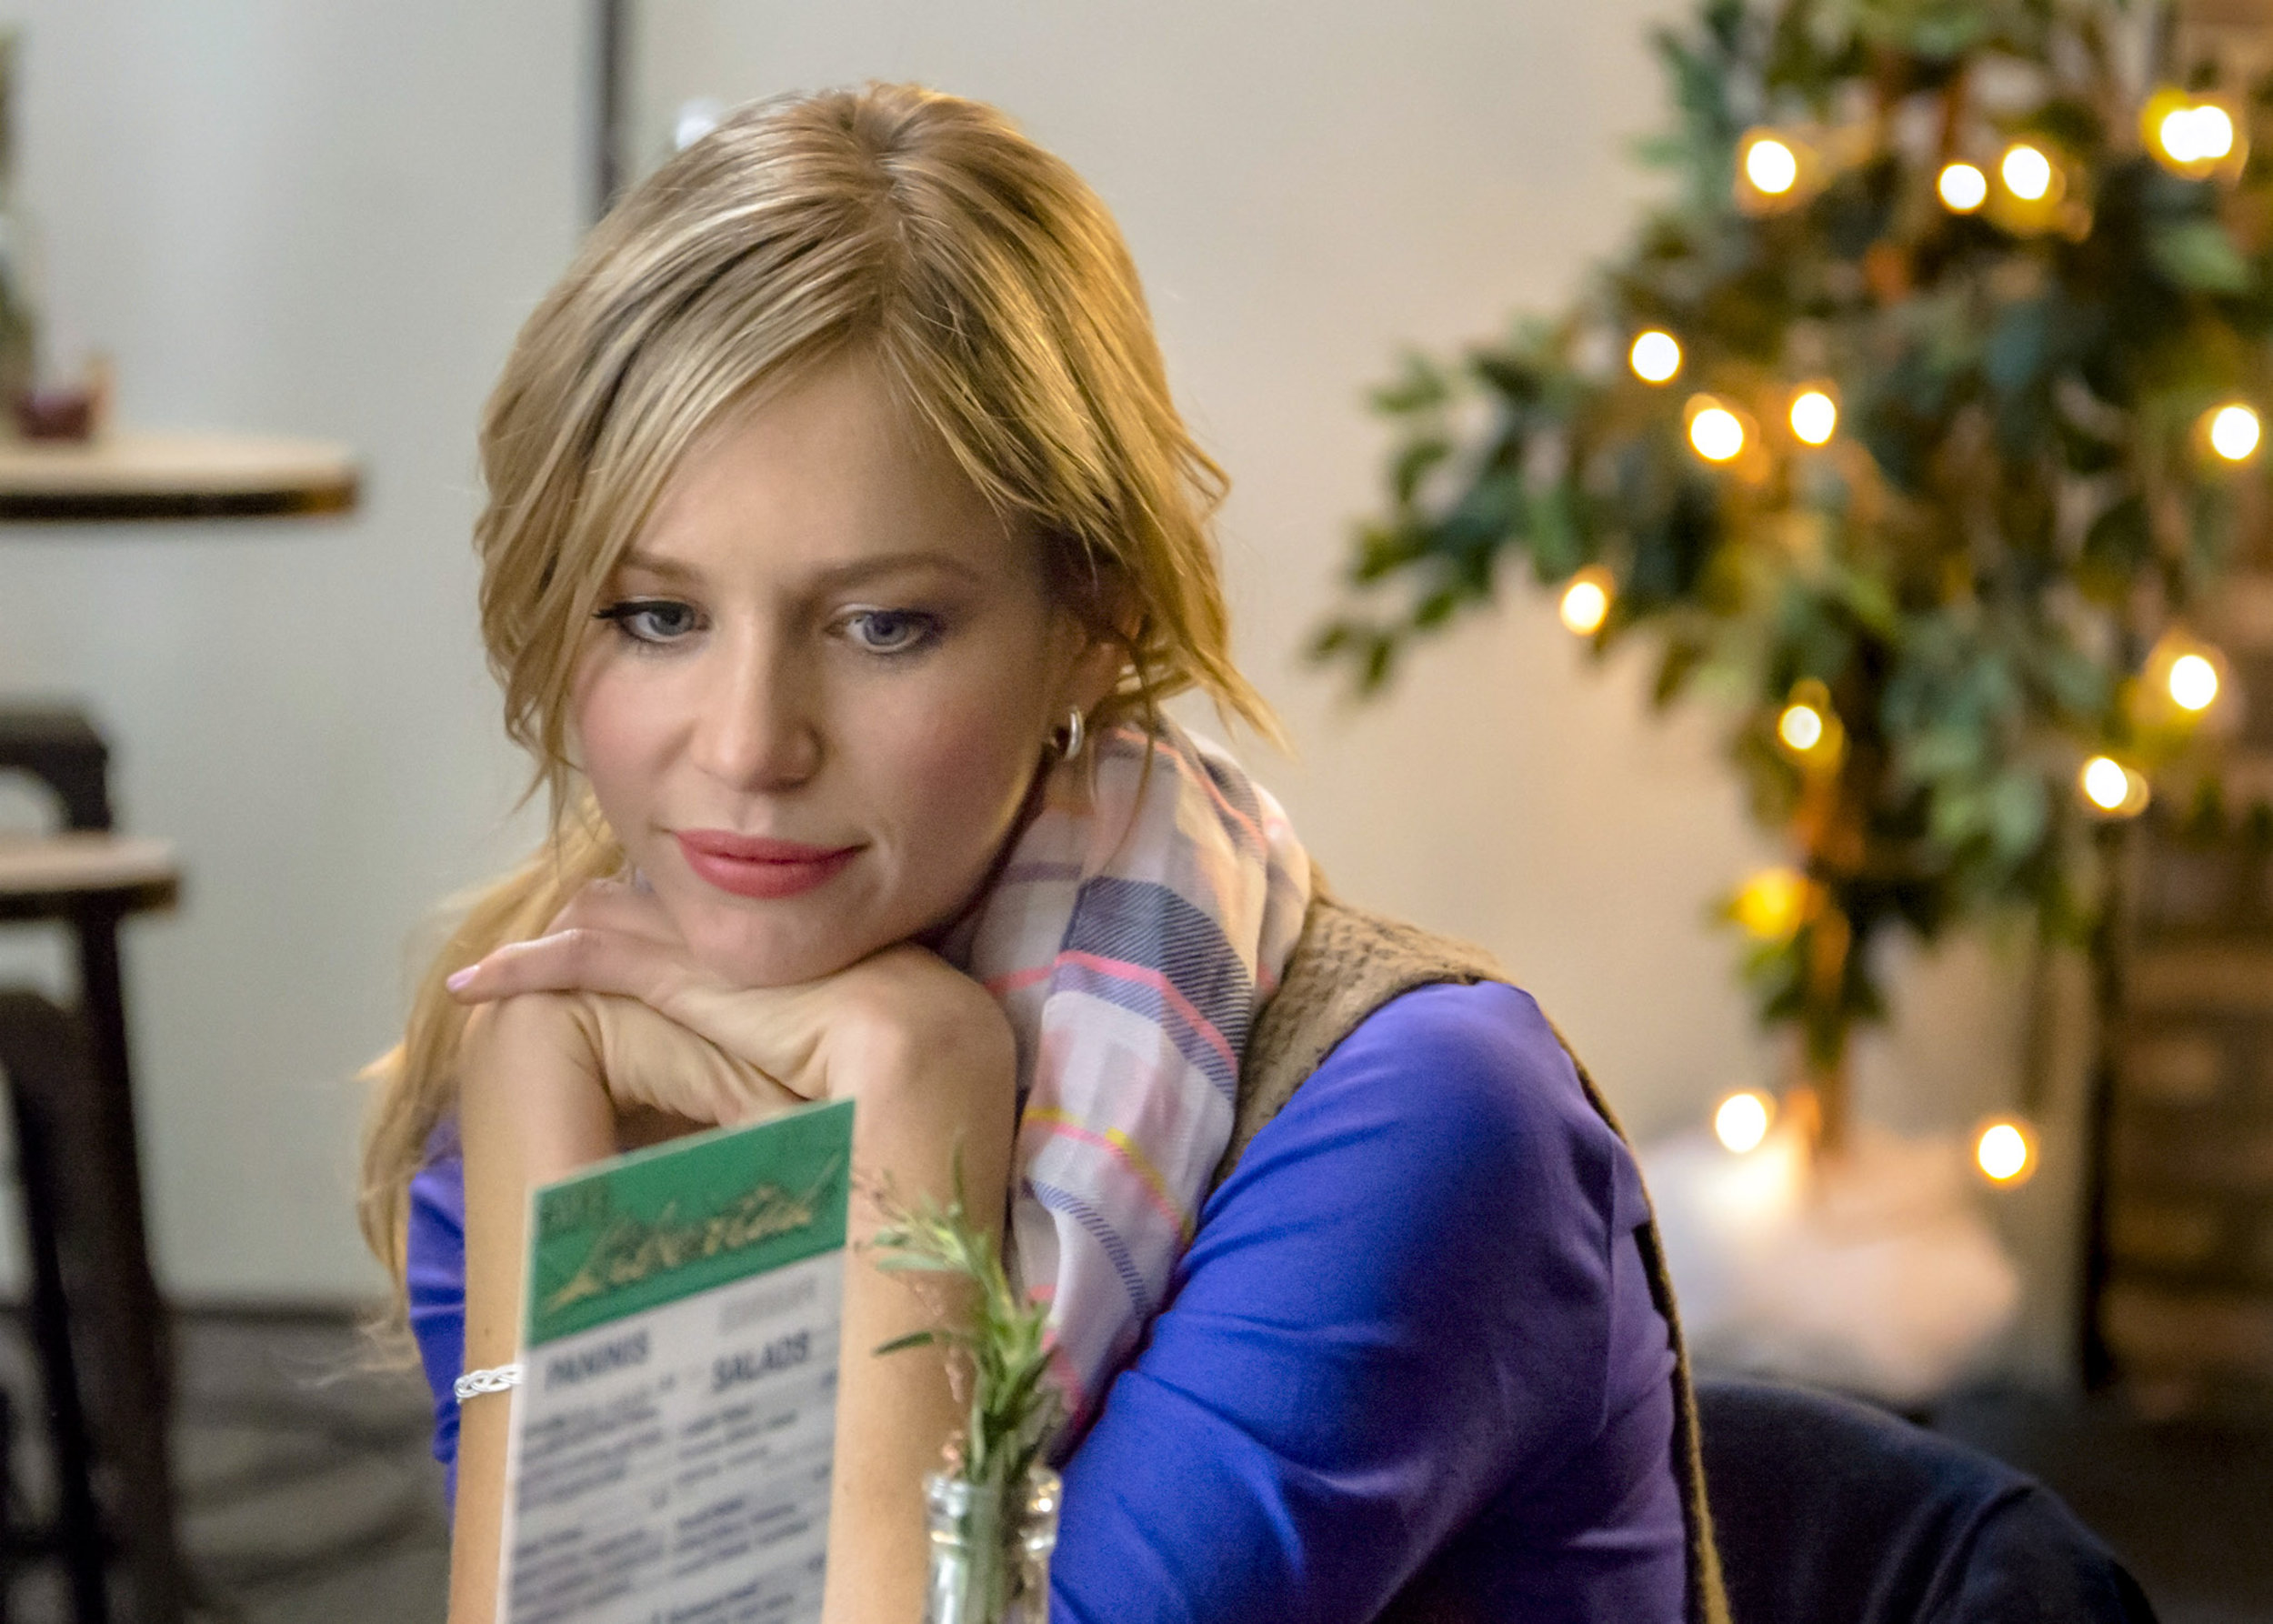 A Perfect Christmas Cast.Tara Holt As Jenny On The Perfect Christmas Present